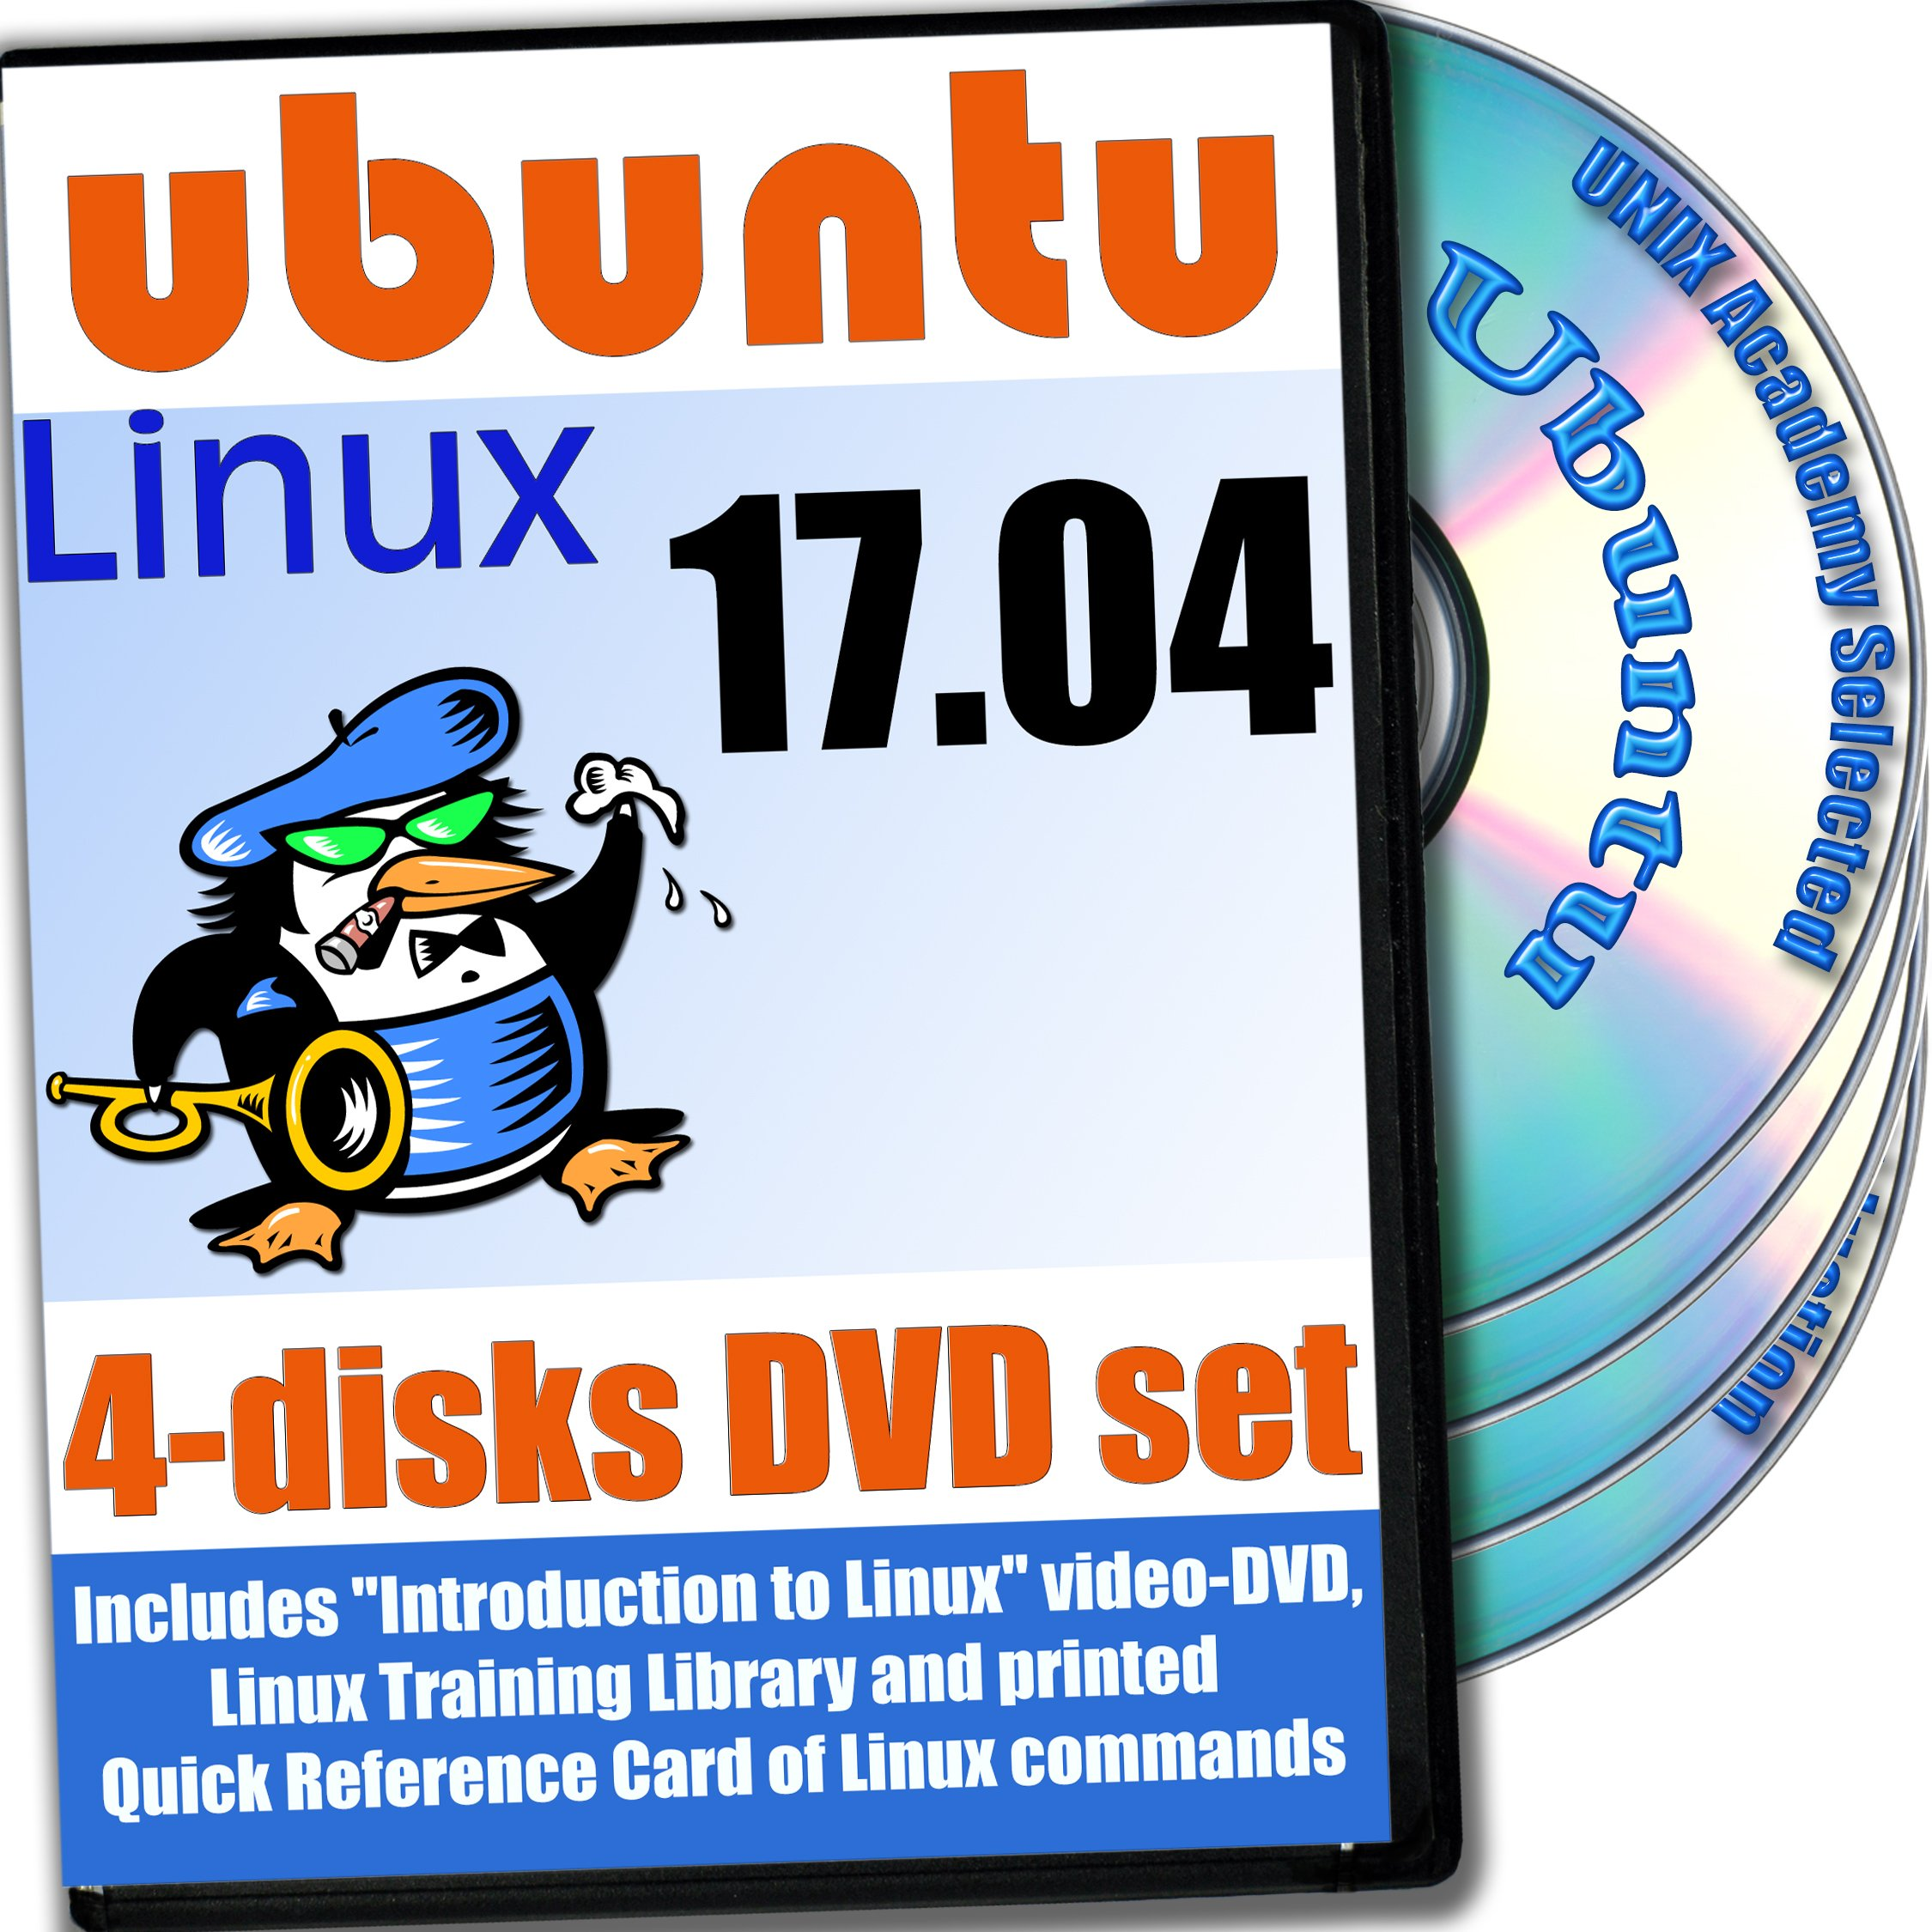 Ubuntu 17.04, Newest Linux Release 4-discs DVD Installation and Reference Set by PRIZIX